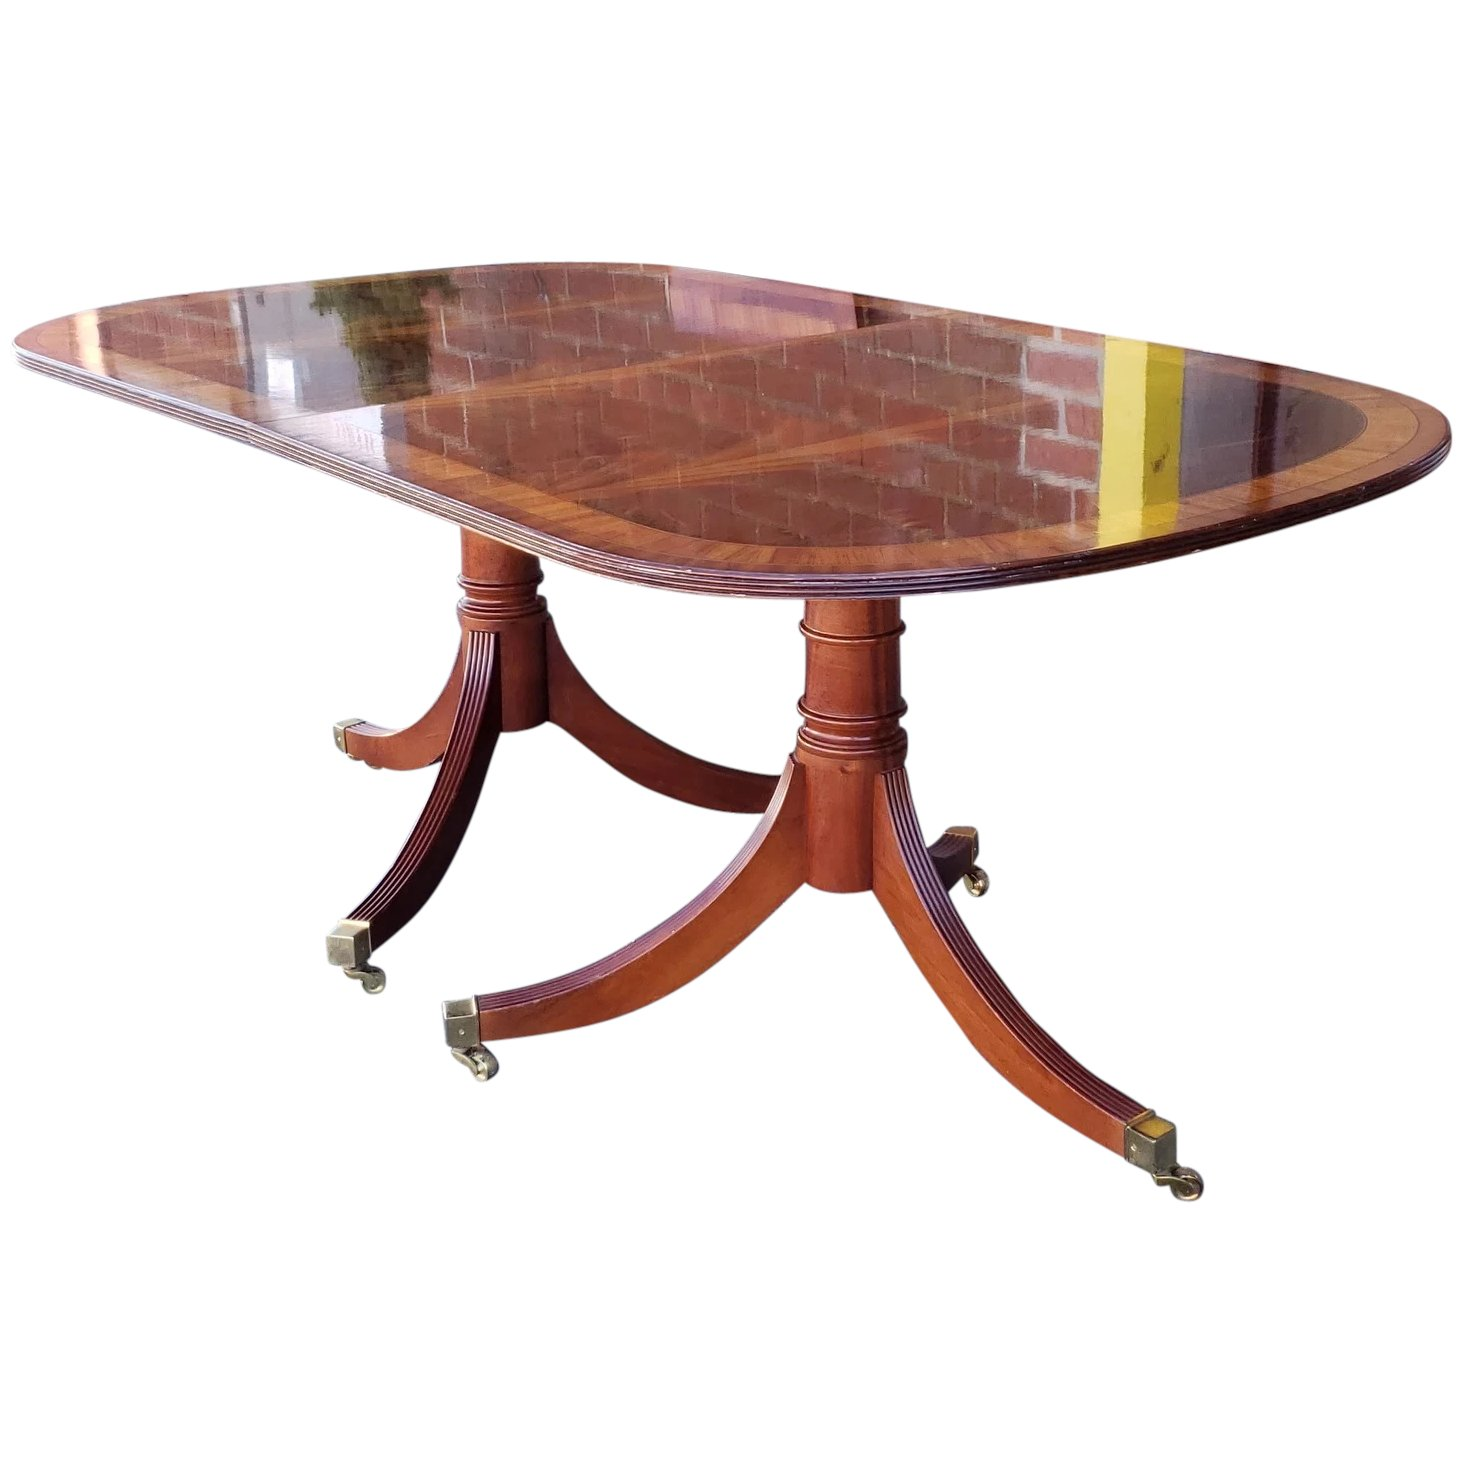 Fine Banded Mahogany MCGK Woodworks Inc Double Pedestal Dining Room Table  w/ 2 Leaves 1990s